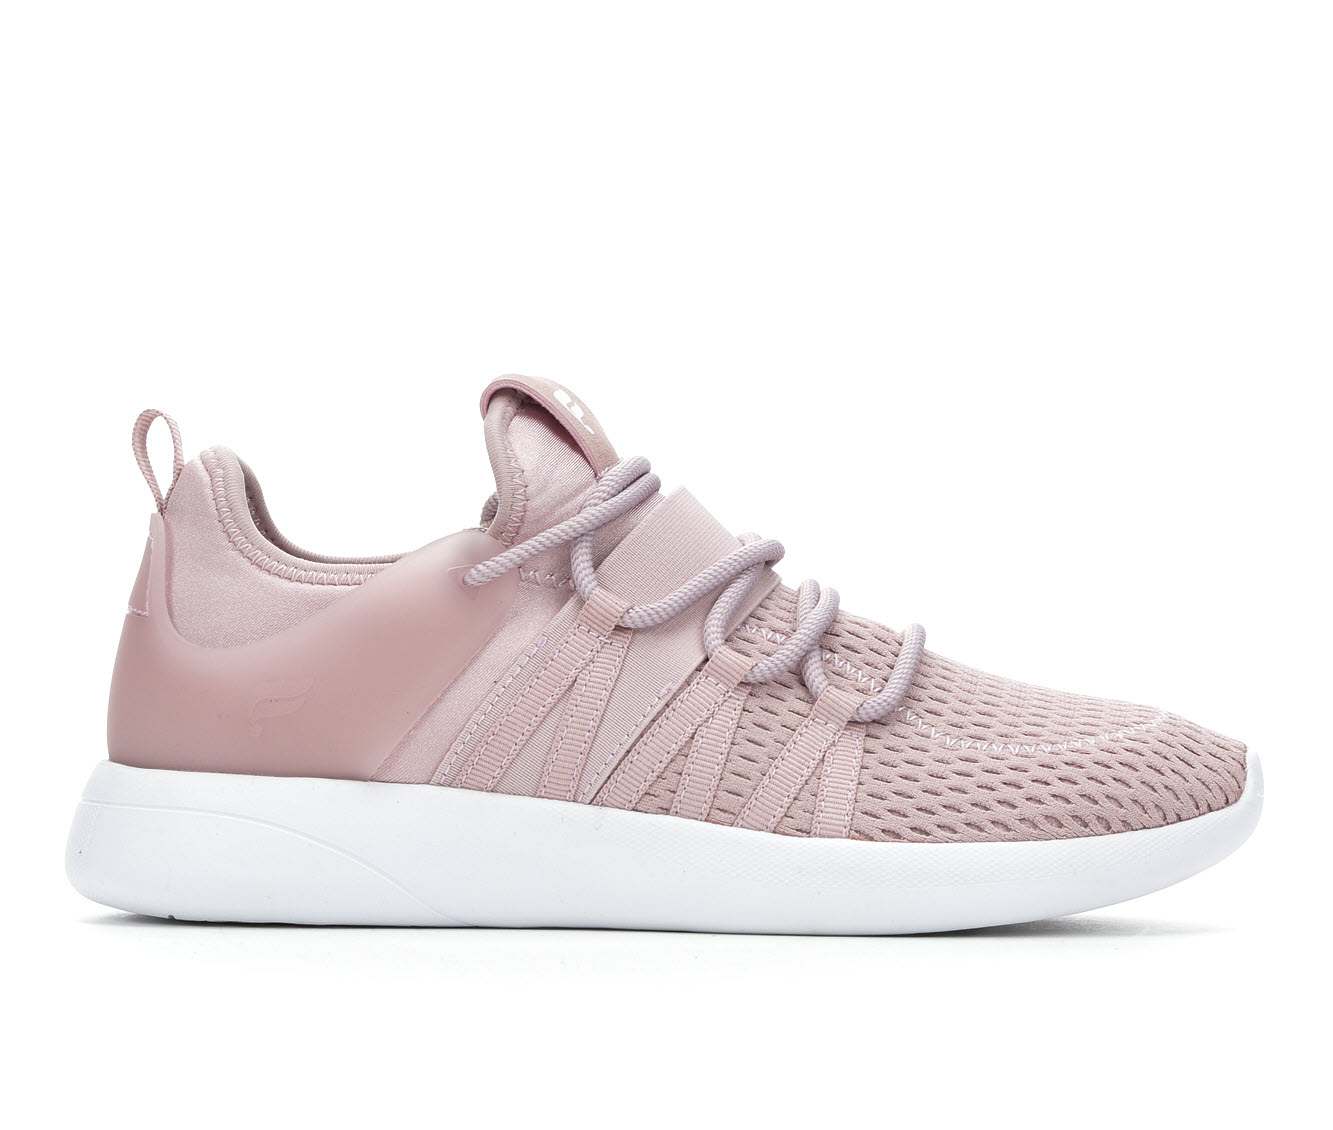 Fabletics Avalon Women's Athletic Shoe (Pink)